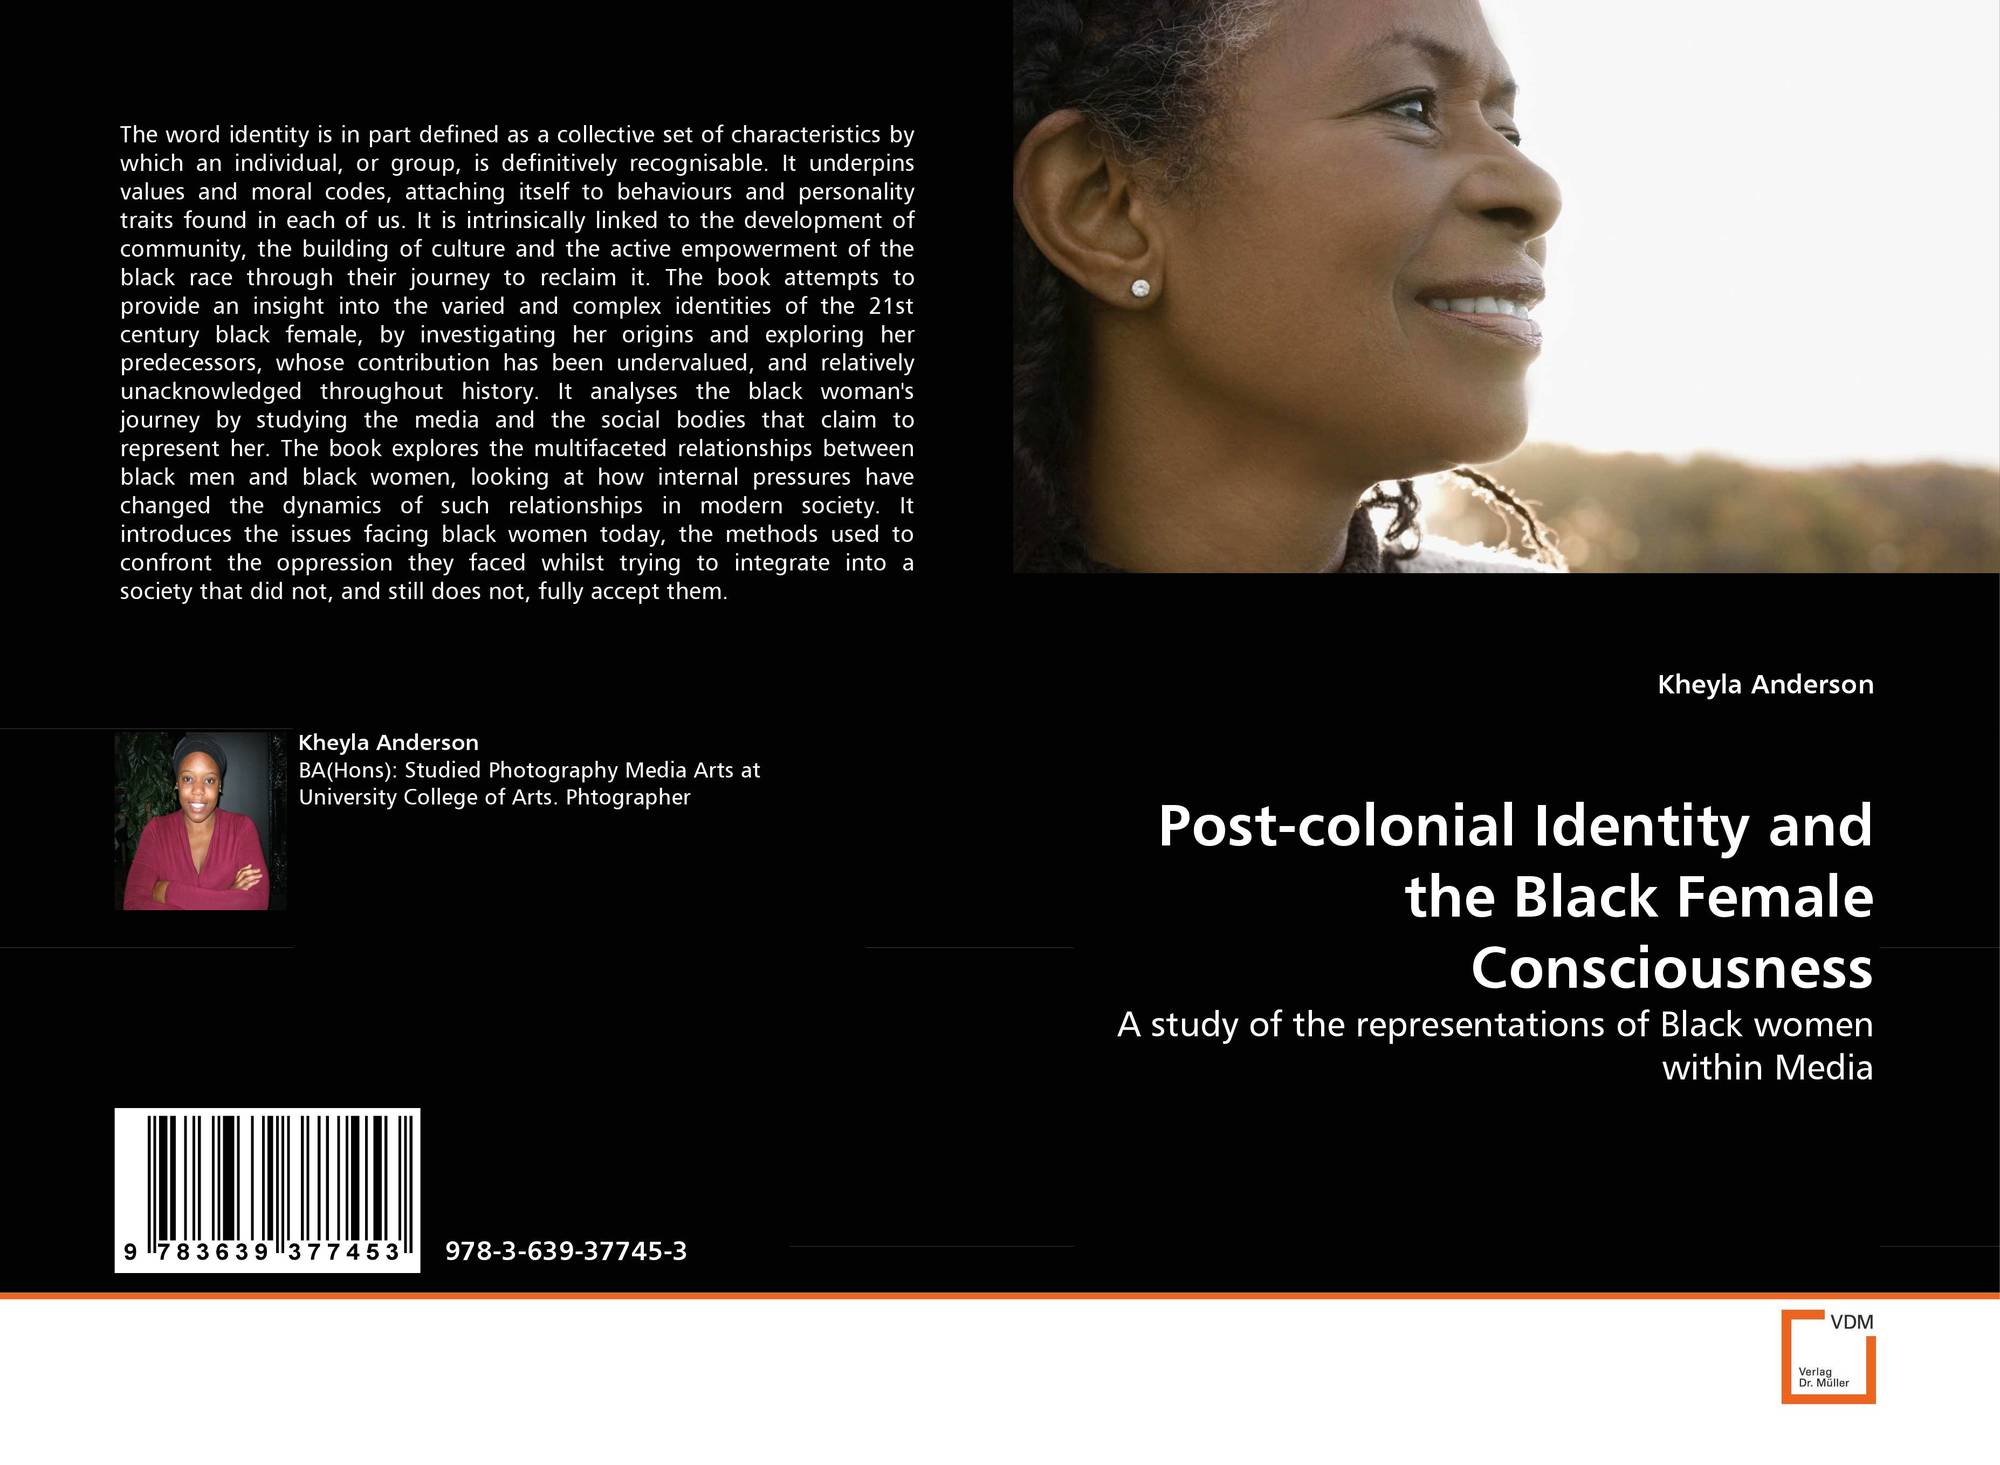 essay on black consciousness movement As he had done in his essay on the new negro woman [the new negro], this black and racial self like the new negro movement of 1895, the new negro movement of 1925 sought to define who and what a negro was or could be.